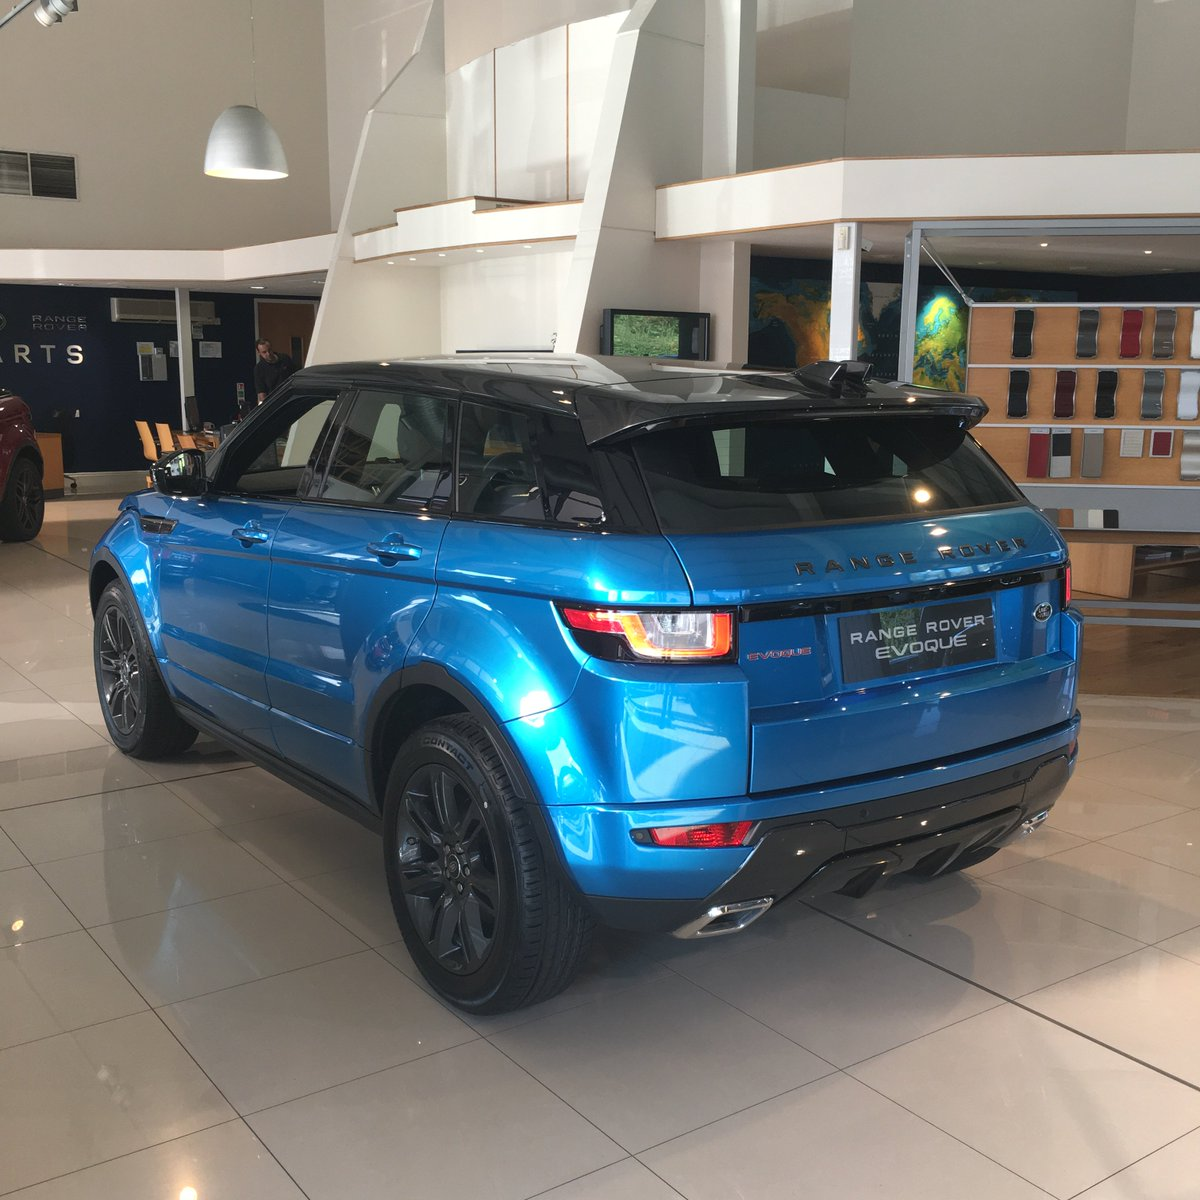 barretts land rover on twitter range rover evoque landmark edition designed to stand out. Black Bedroom Furniture Sets. Home Design Ideas